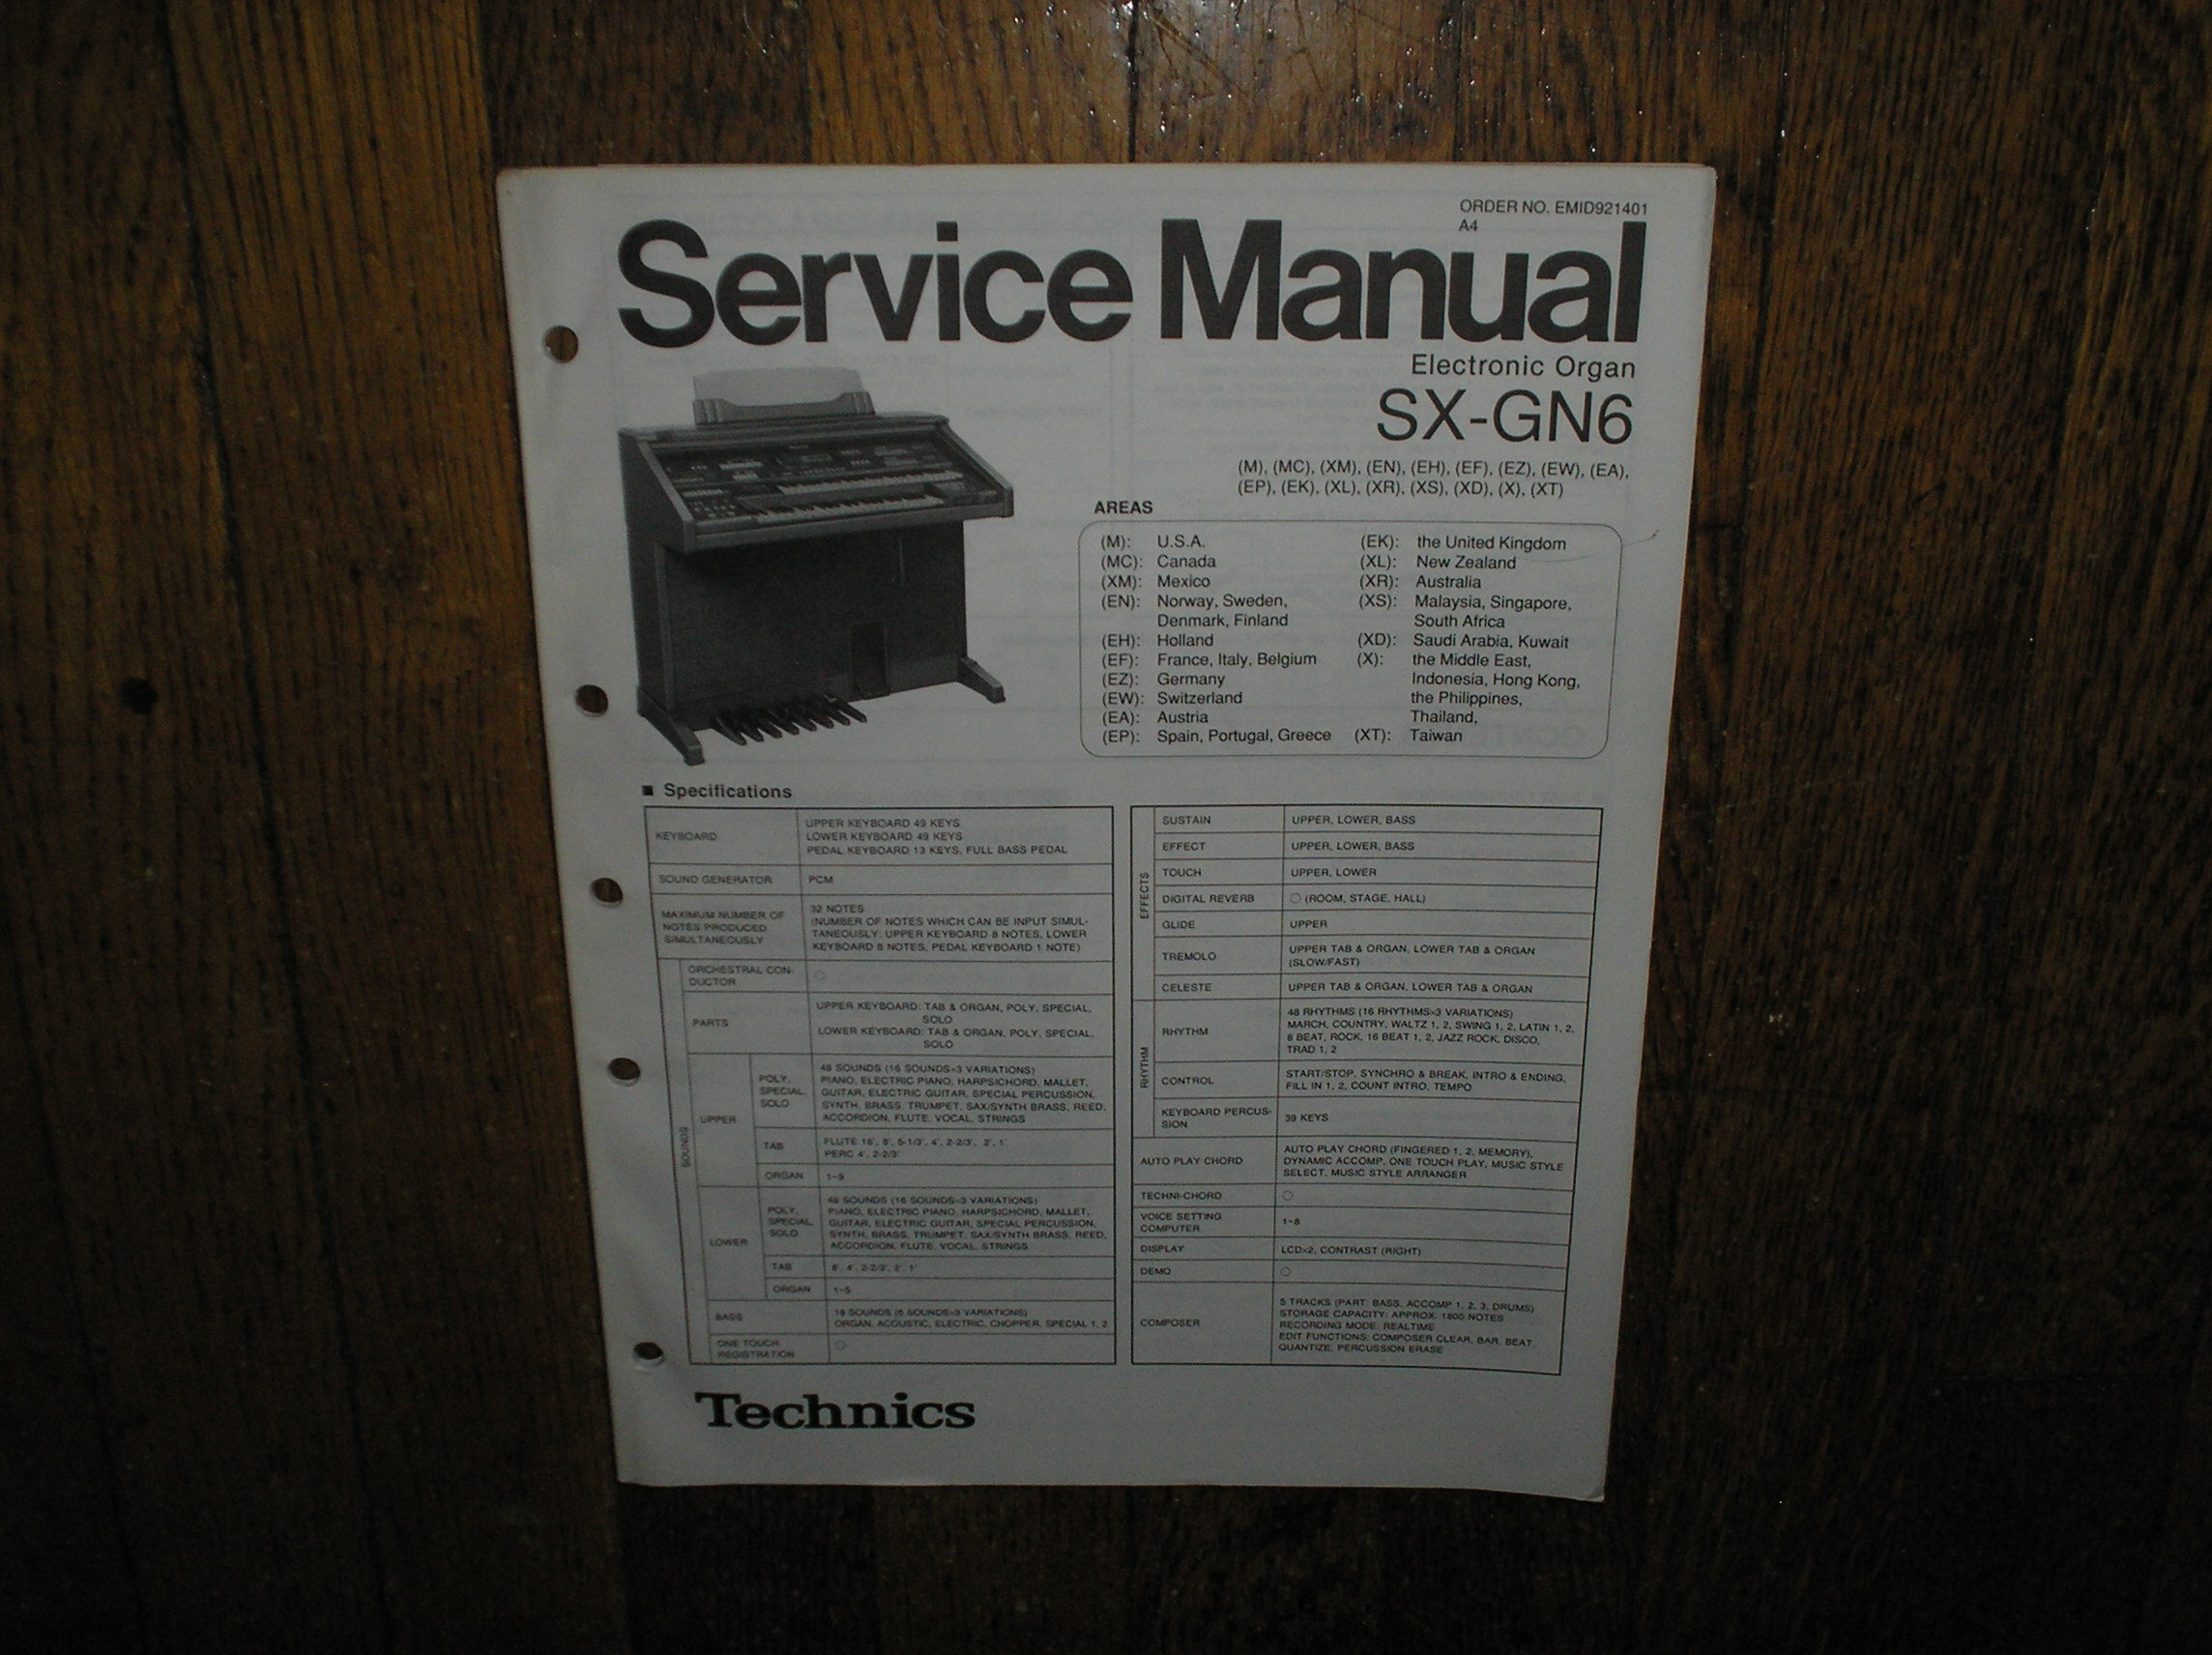 SX-GN6 Electric Organ Service Manual